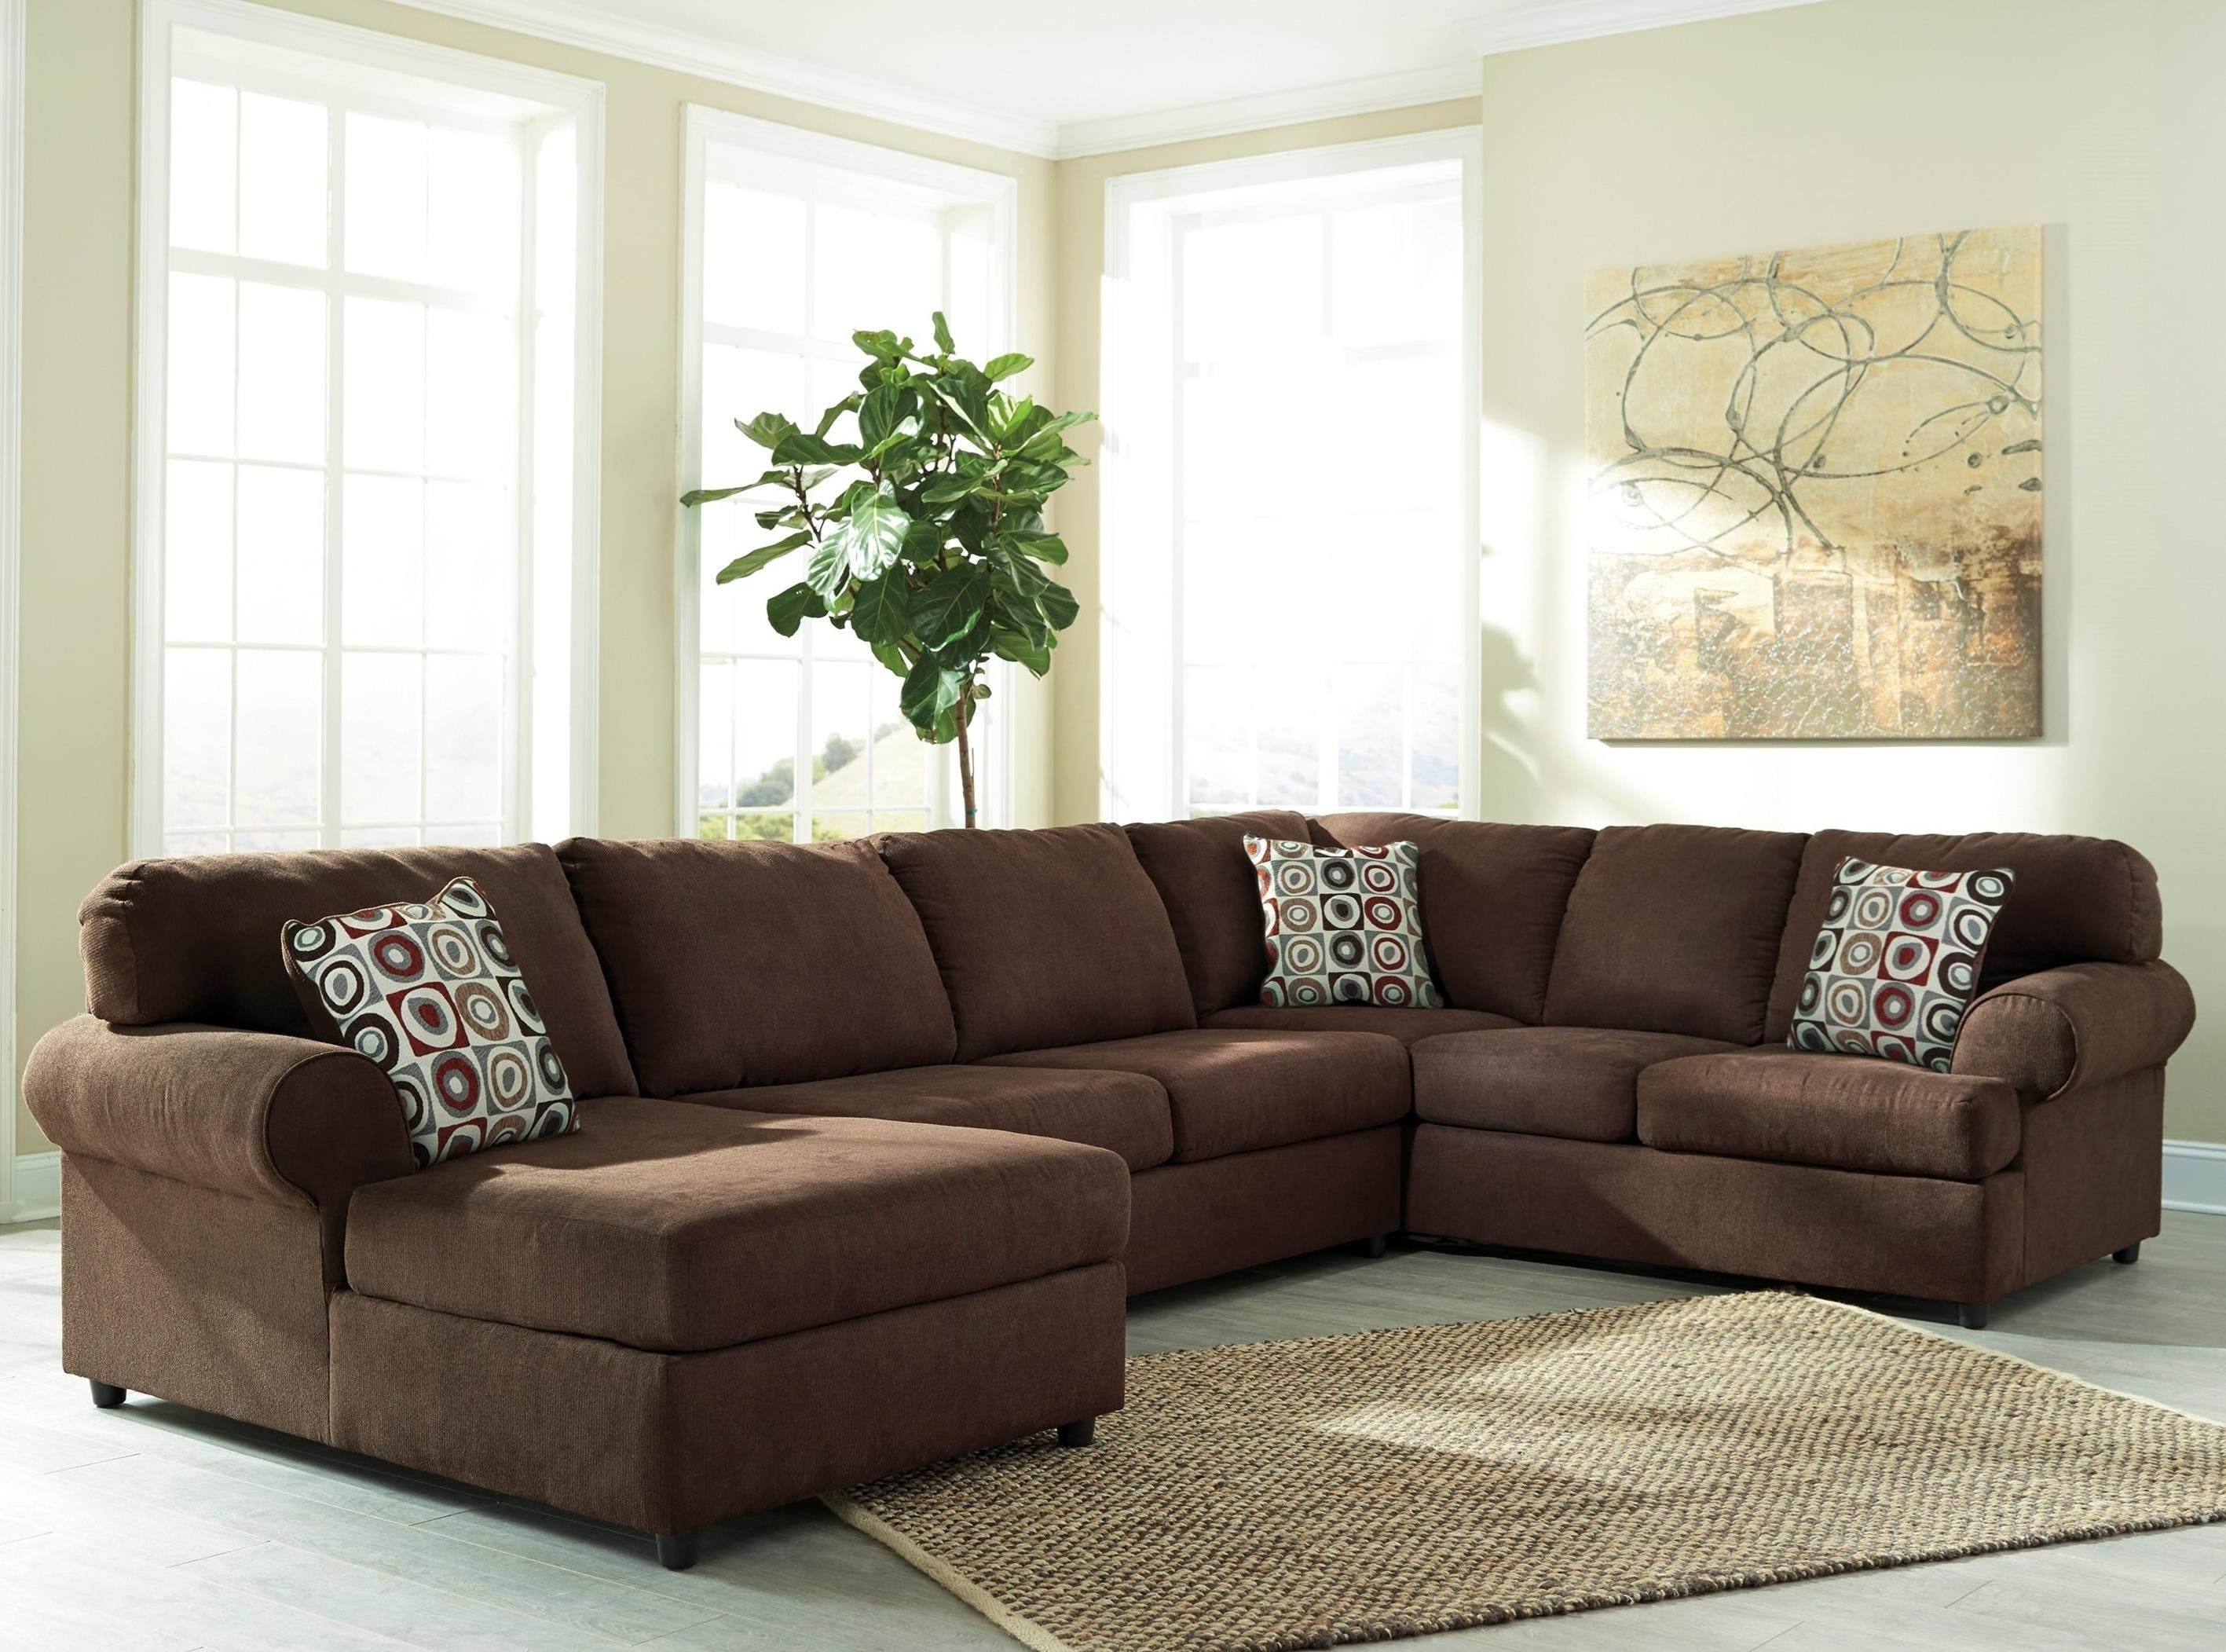 3 Piece Sectional Malbry Point W Laf Chaise Living Spaces 223533 0 With Malbry Point 3 Piece Sectionals With Raf Chaise (View 22 of 25)